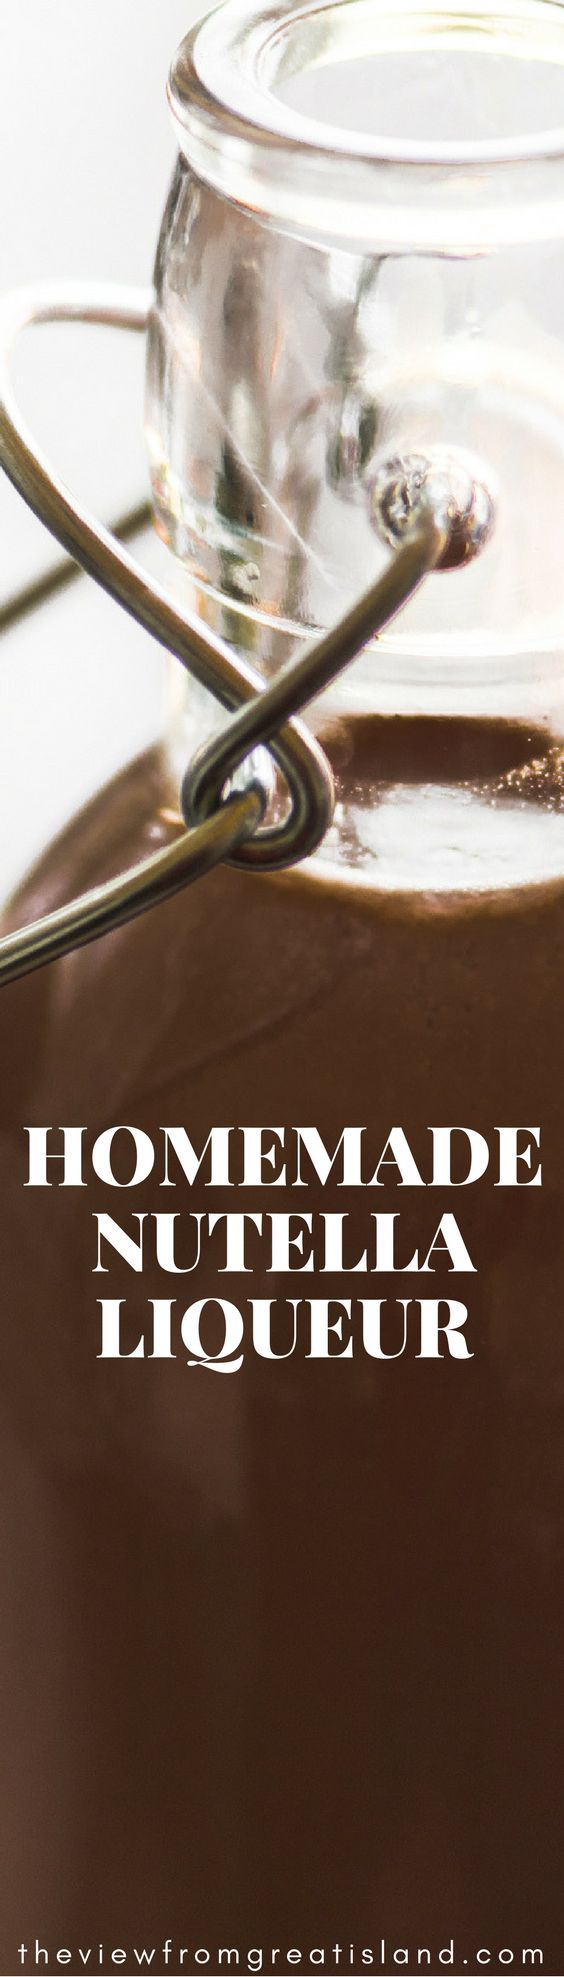 How to Make Homemade Nutella liquor  (Thought about using spiced rum, vanilla vodka, peppermint schnapps, or other alcohol)